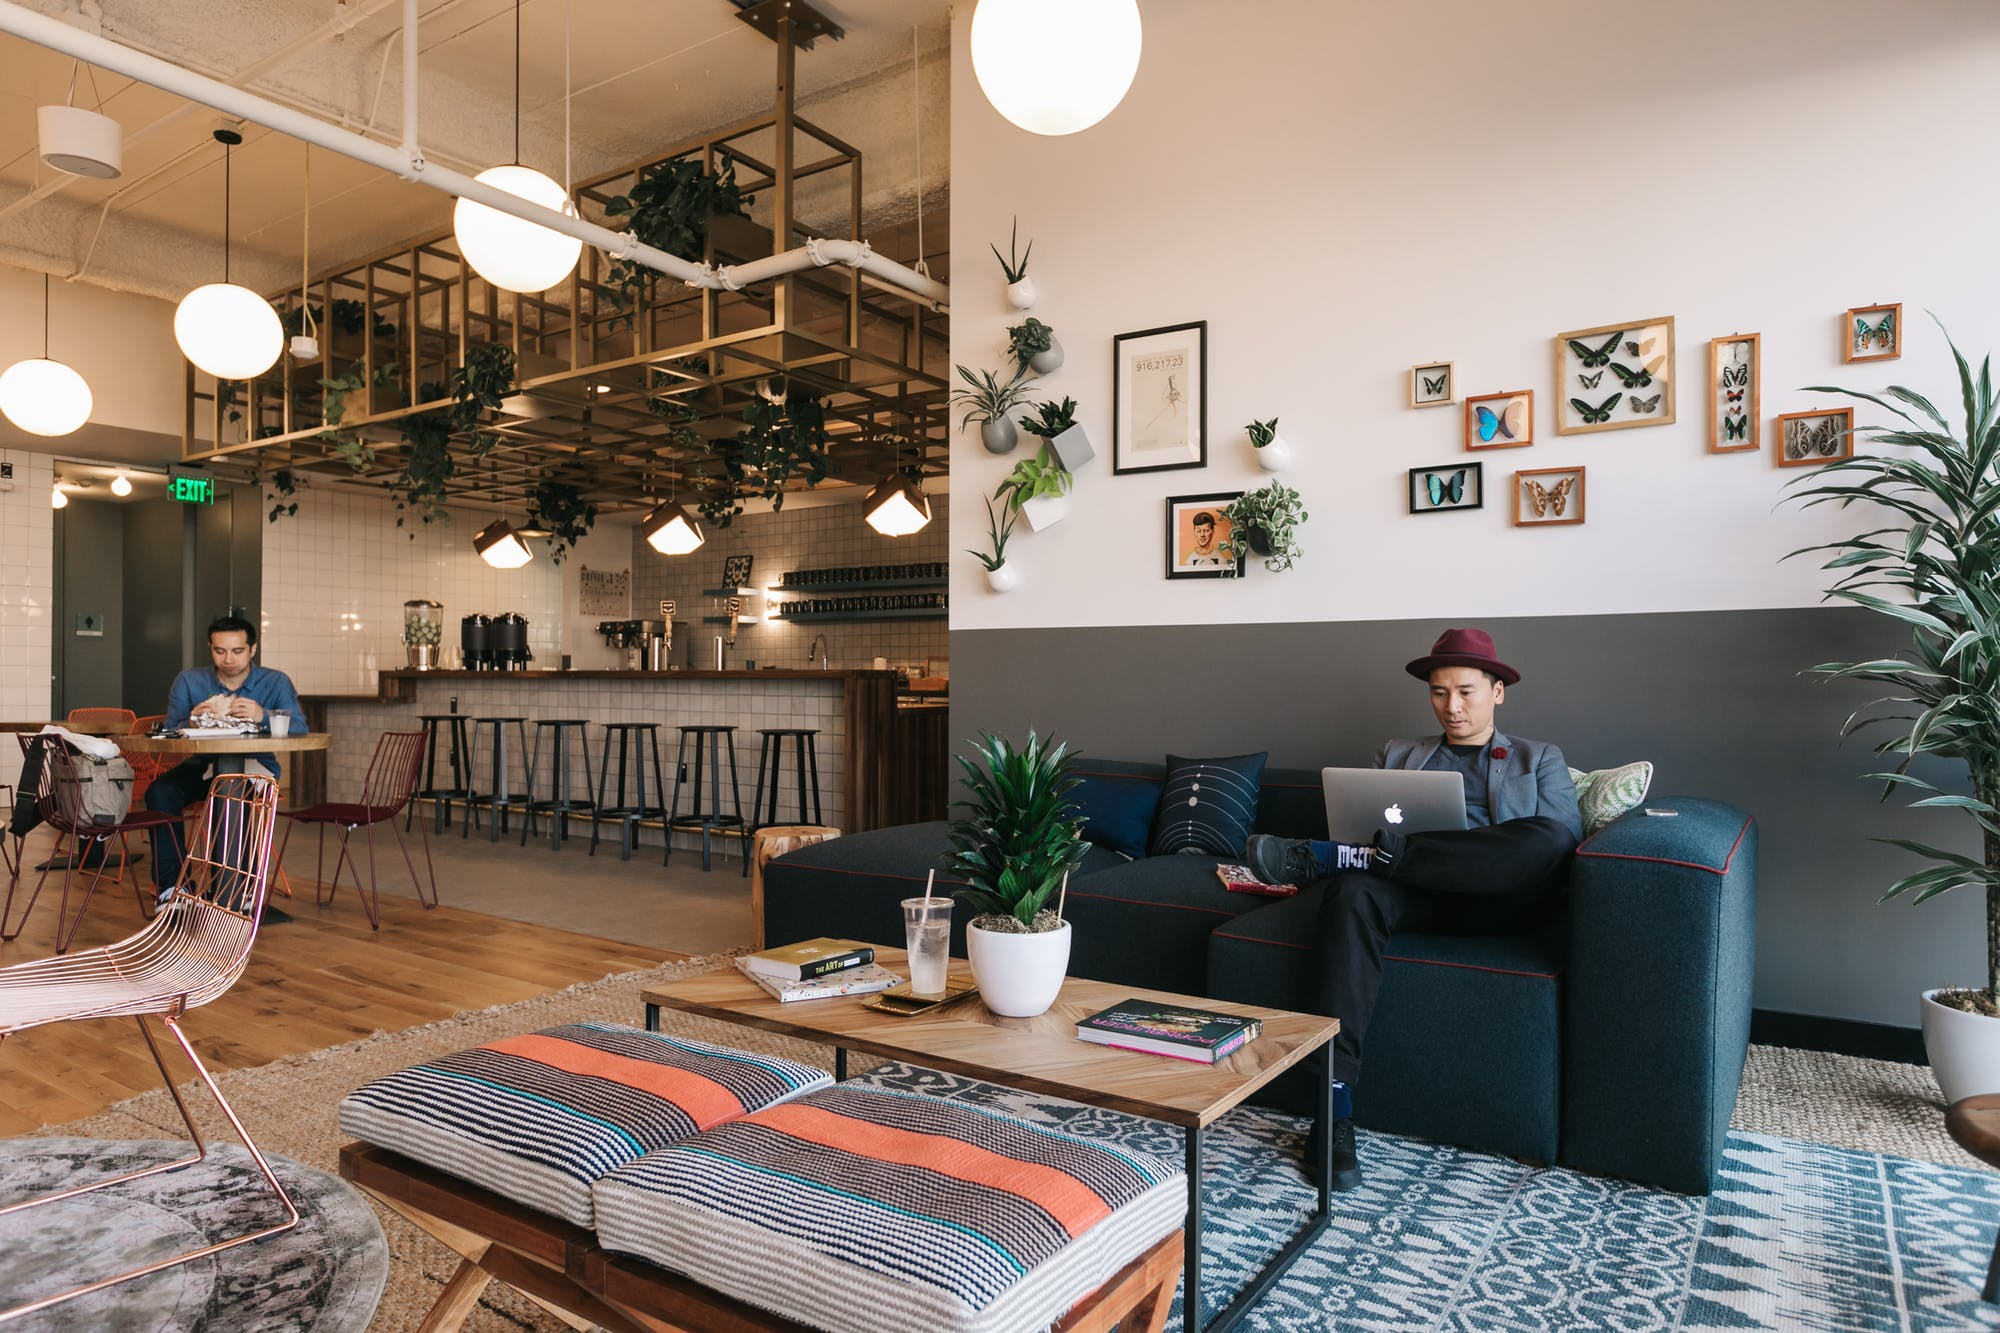 wework - The Bard - Fairchild Place, EC2 - Shoreditch (Opening 01-10-2020)